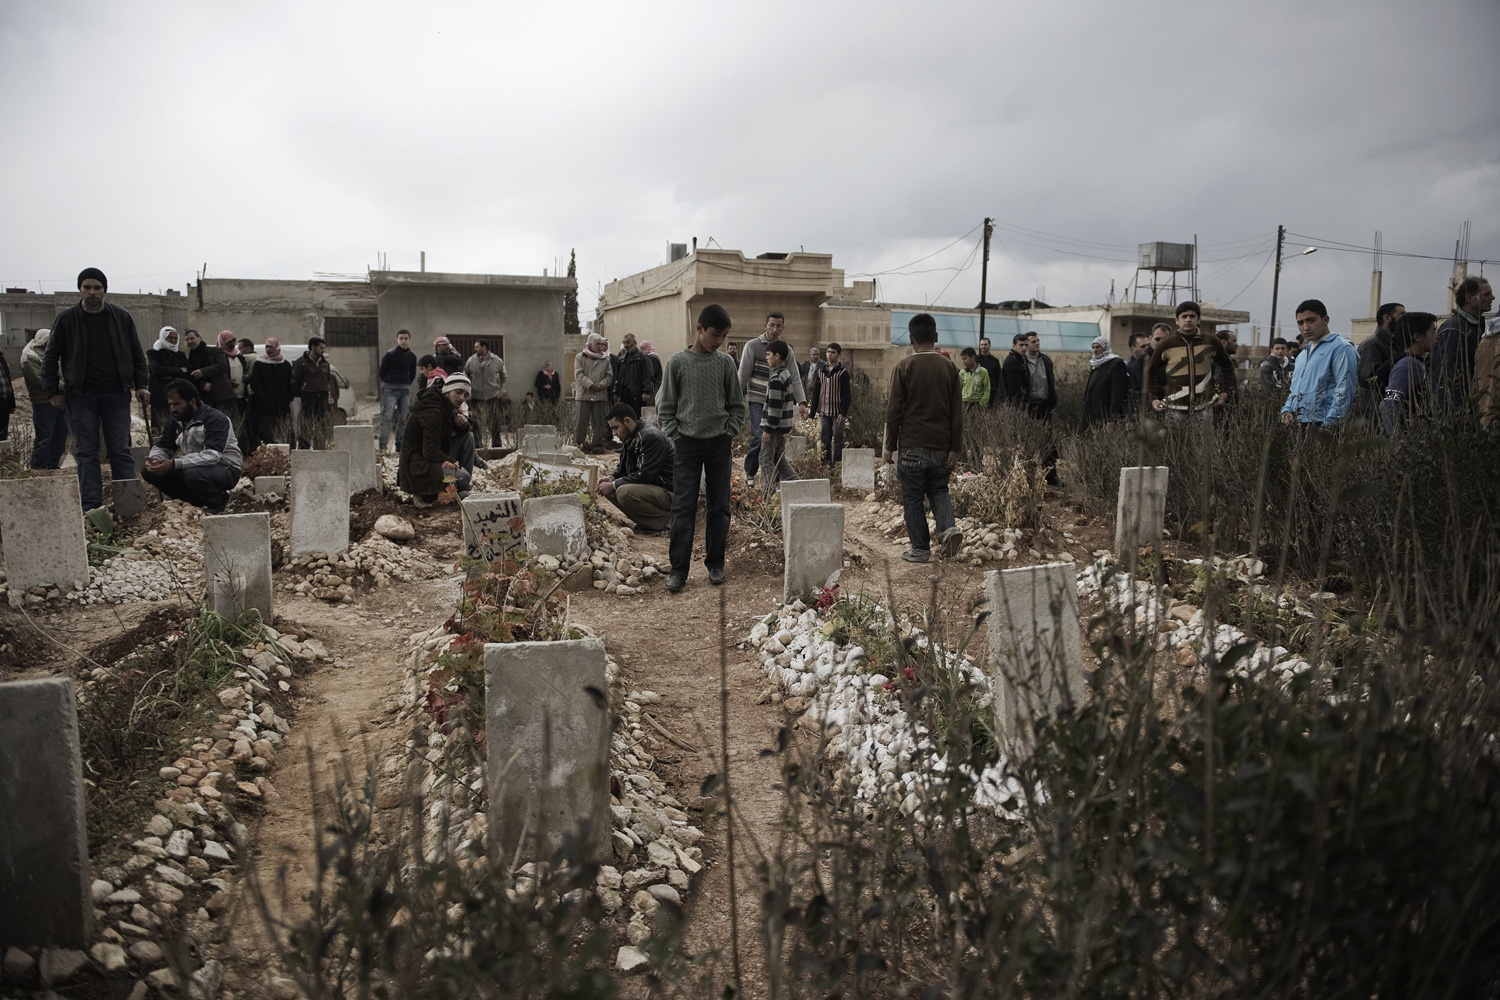 Feb. 28, 2012. Syrians gather at a graveyard during the funeral of a man killed by a shrapnel in the Syrian town of Qusayr.